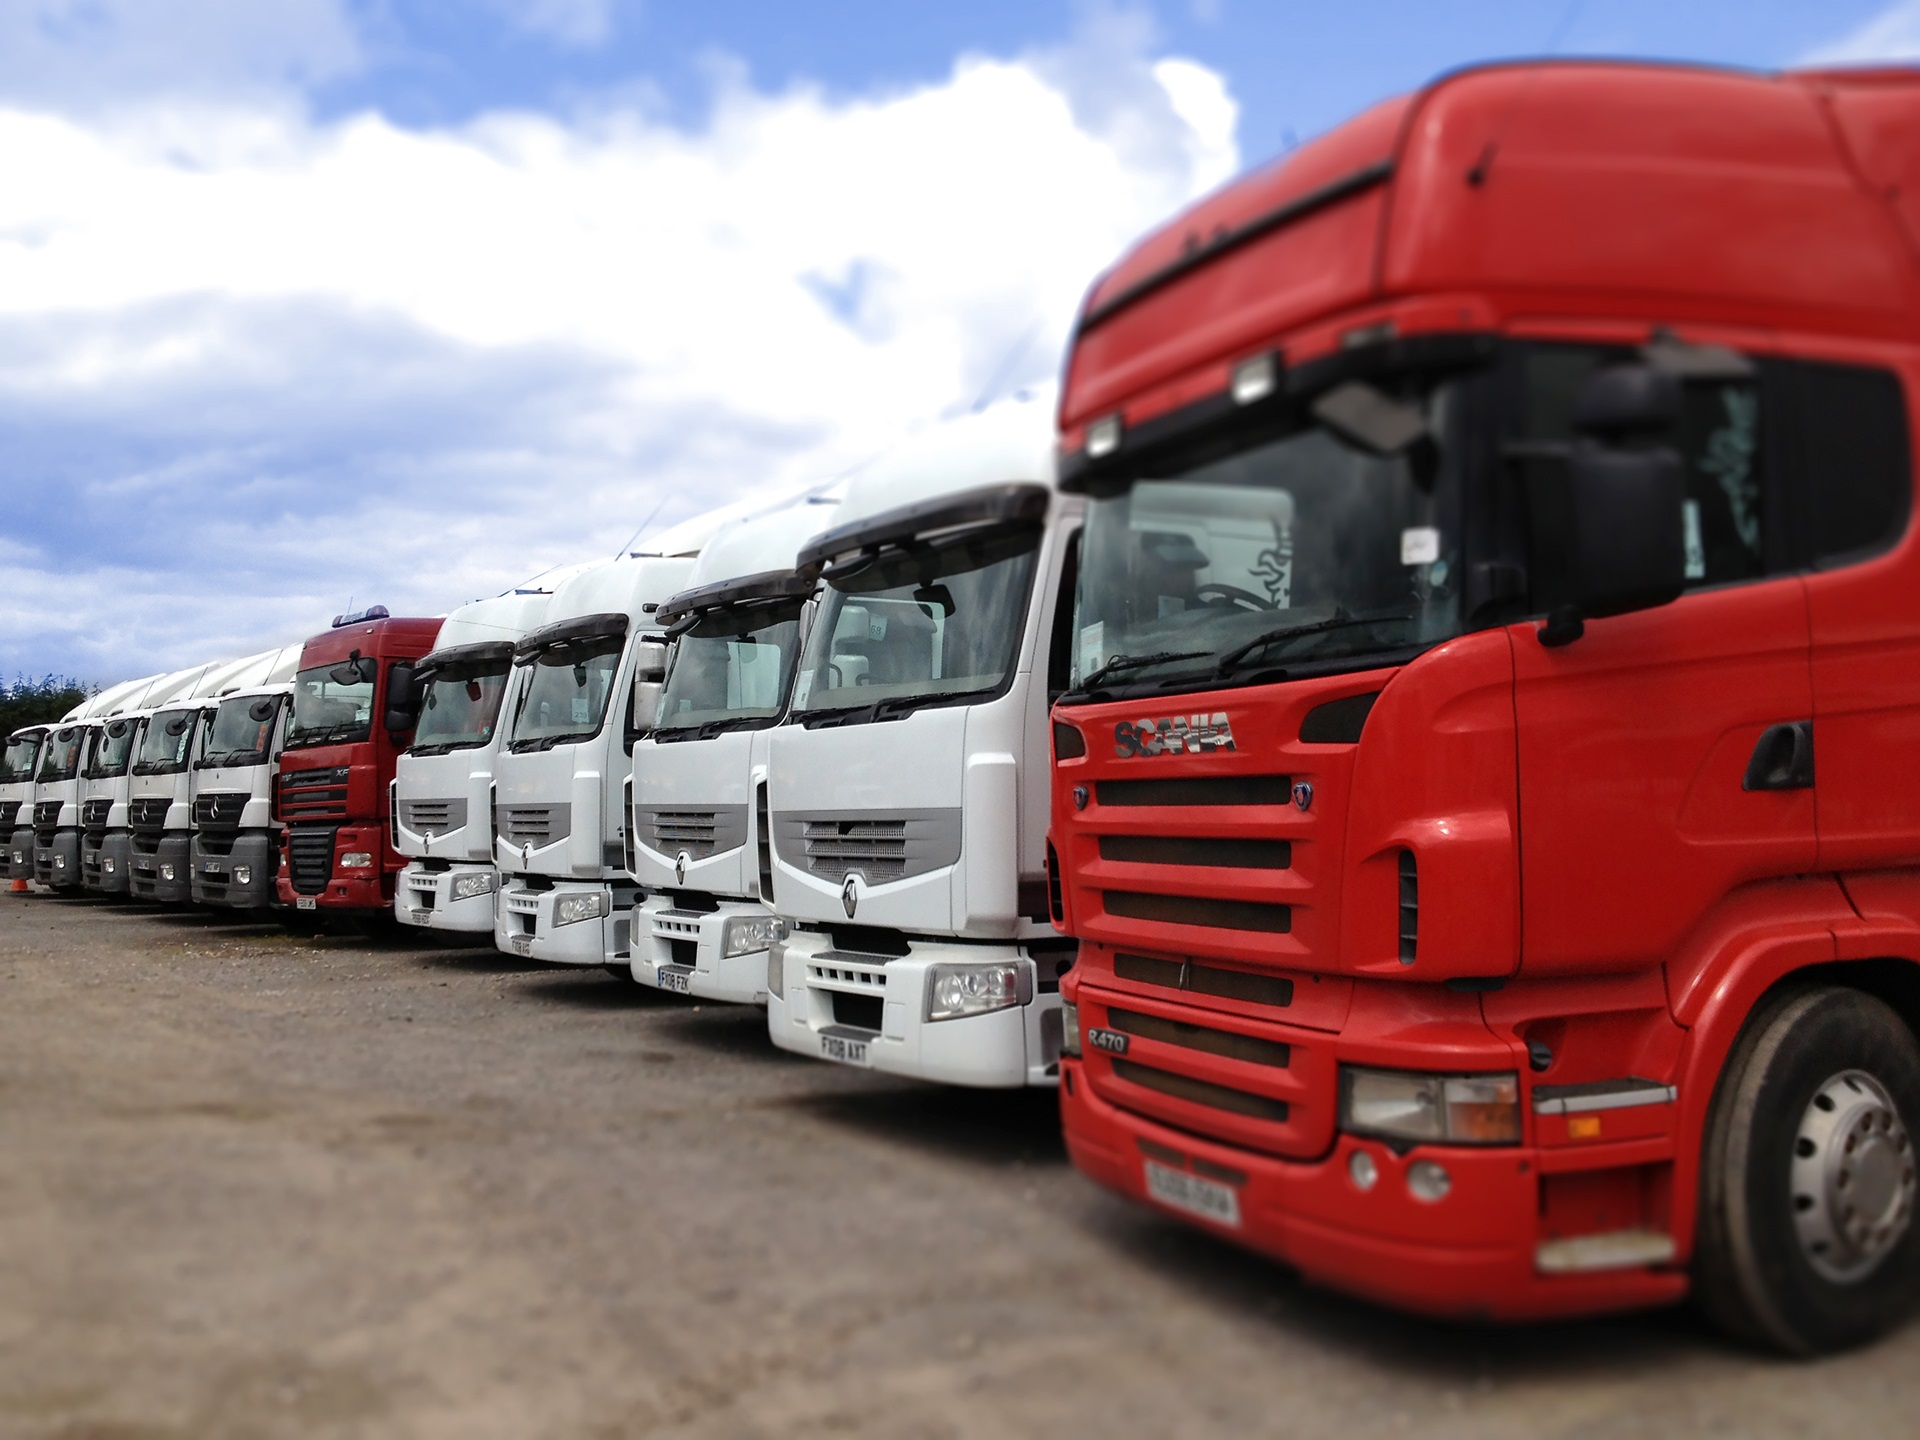 A line of of trucks